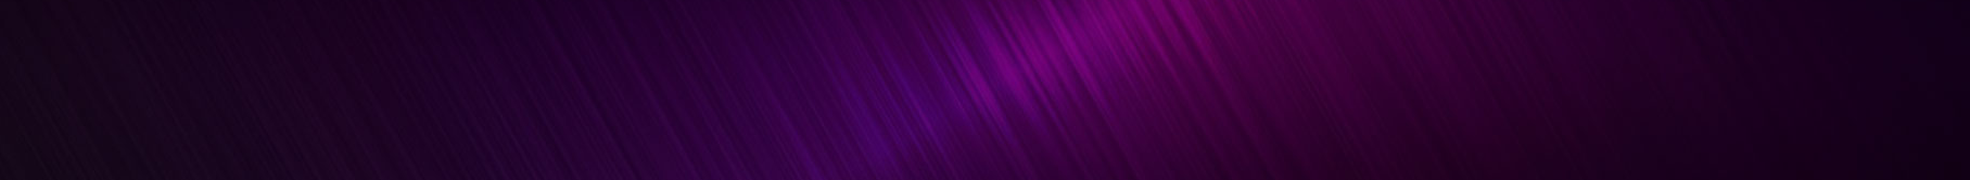 Free Purple Lines Png, Download Free Clip Art, Free Clip Art.